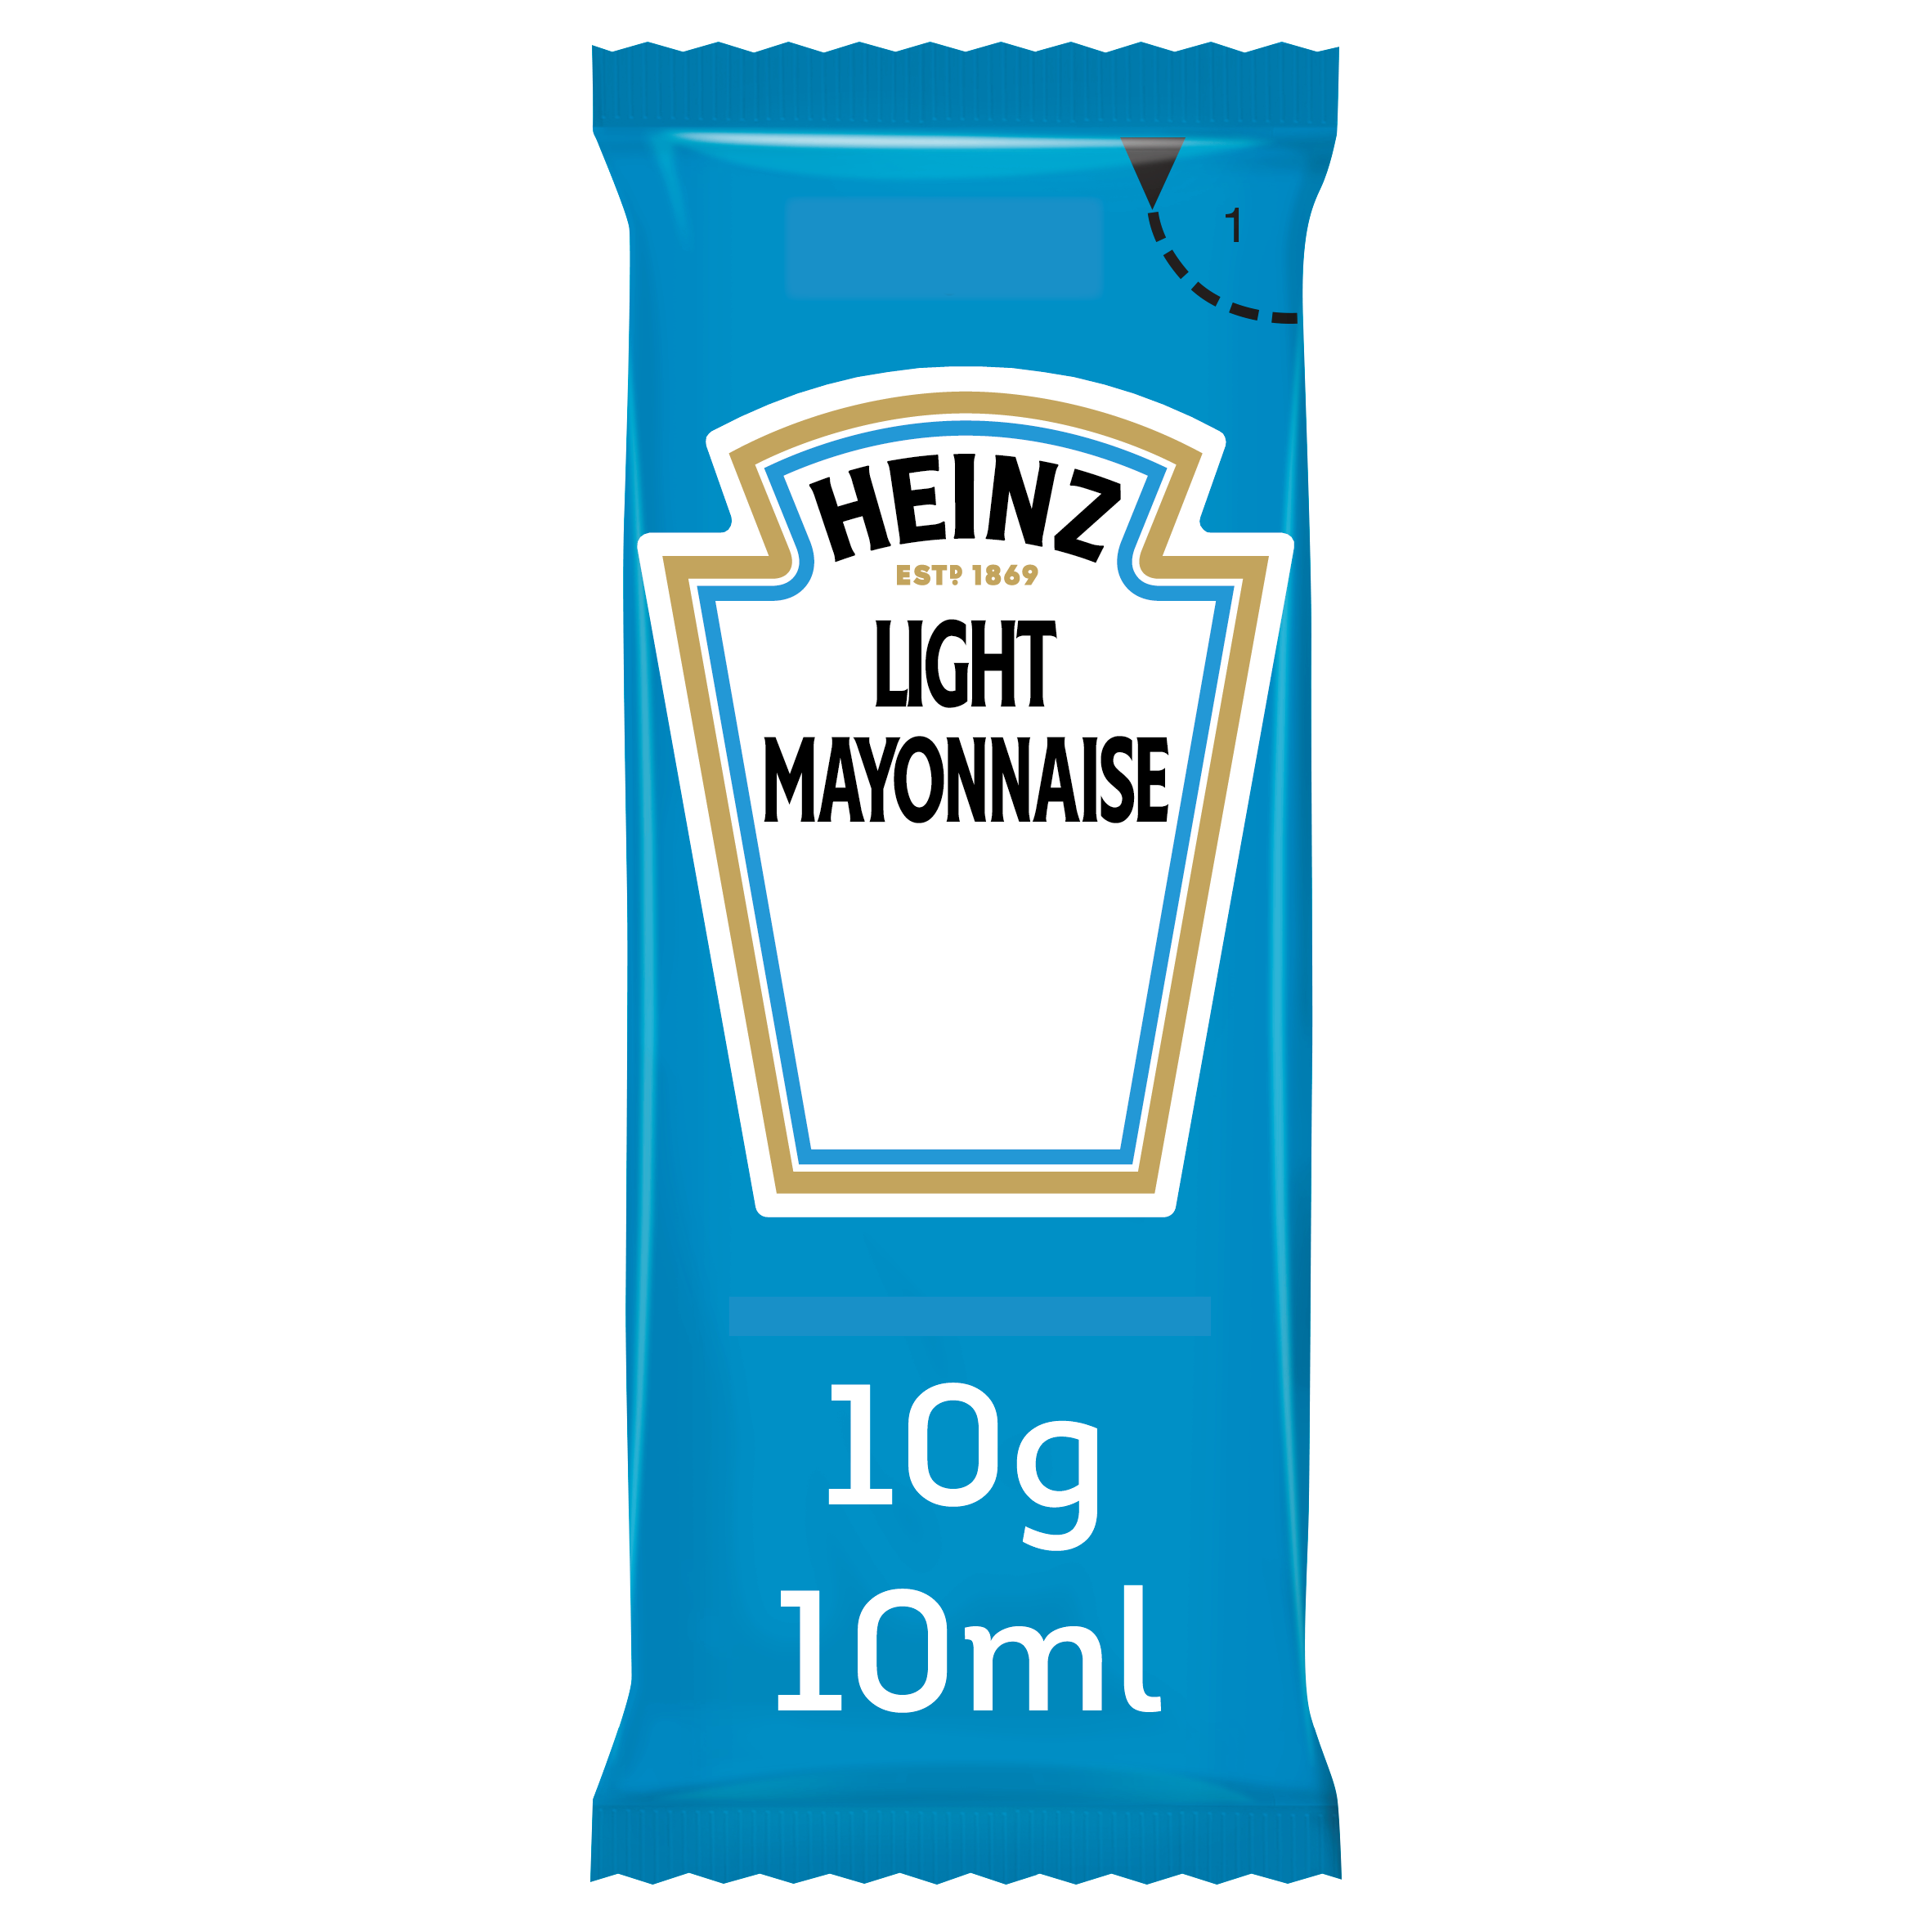 Heinz Mayonnaise Light 10ml Sachet image